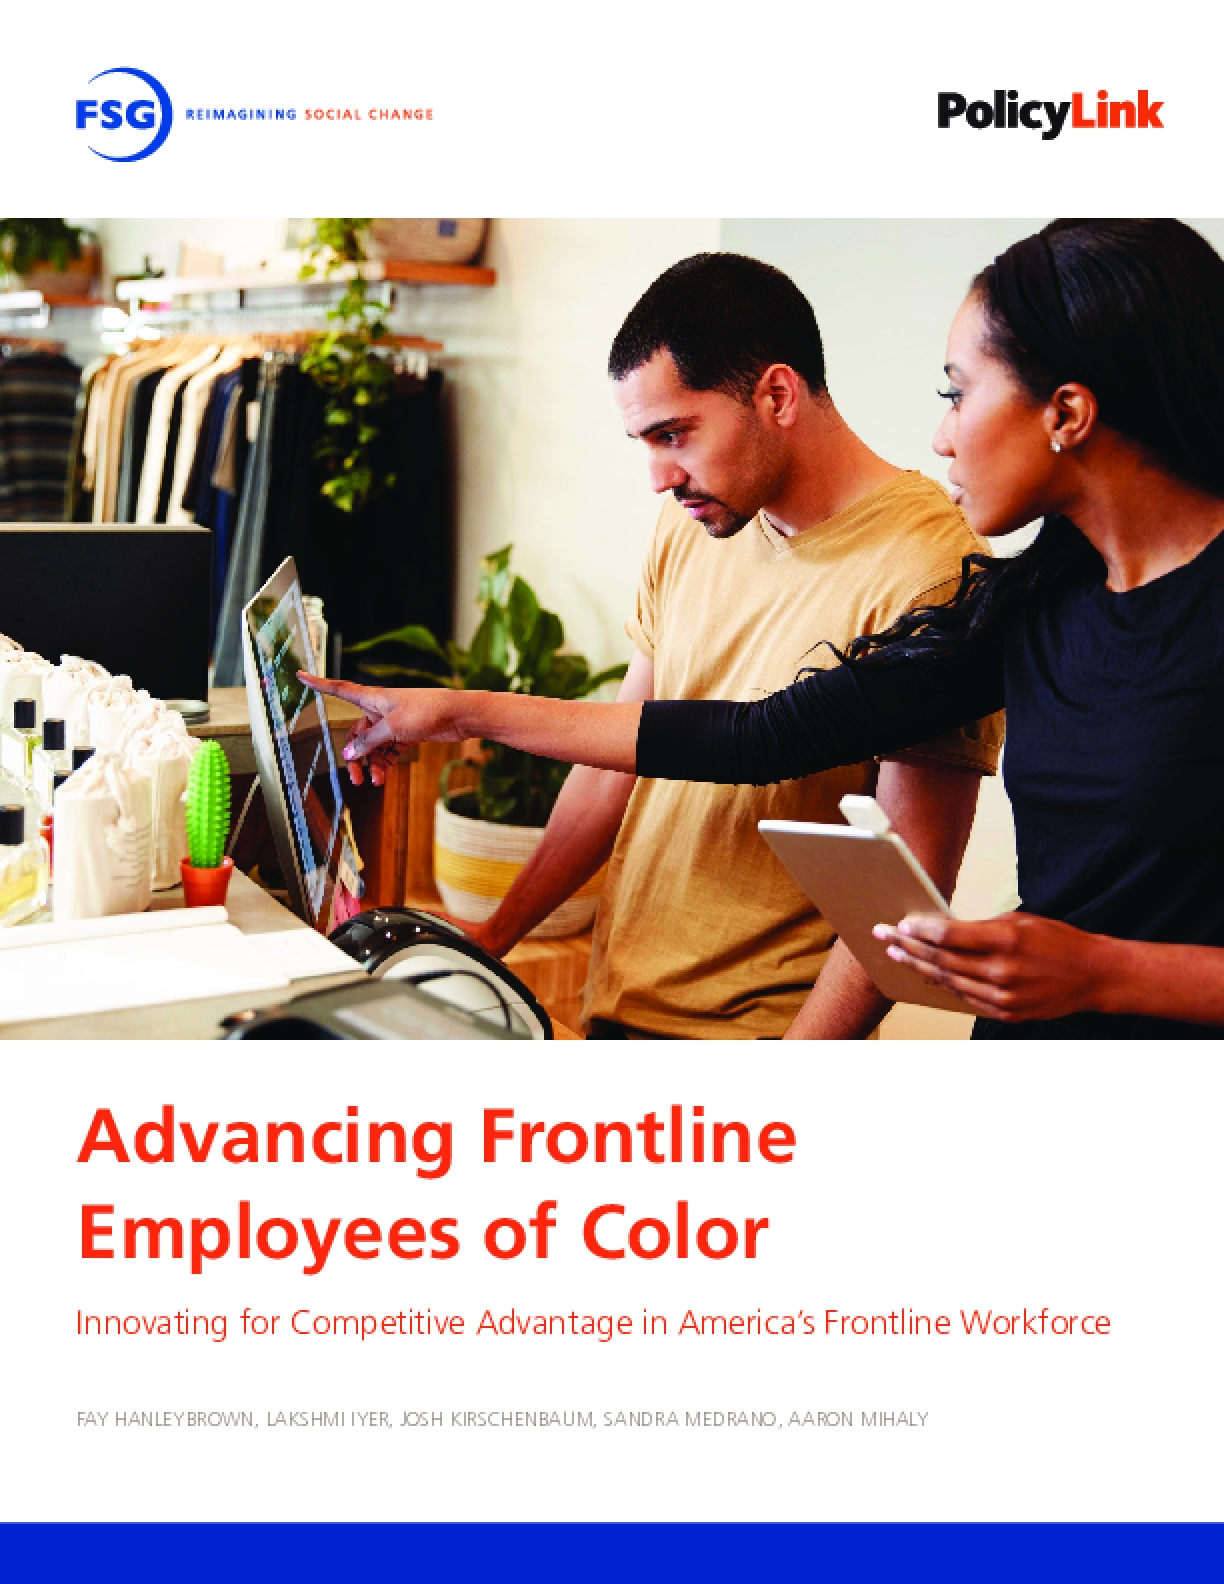 Advancing Frontline Employees of Color